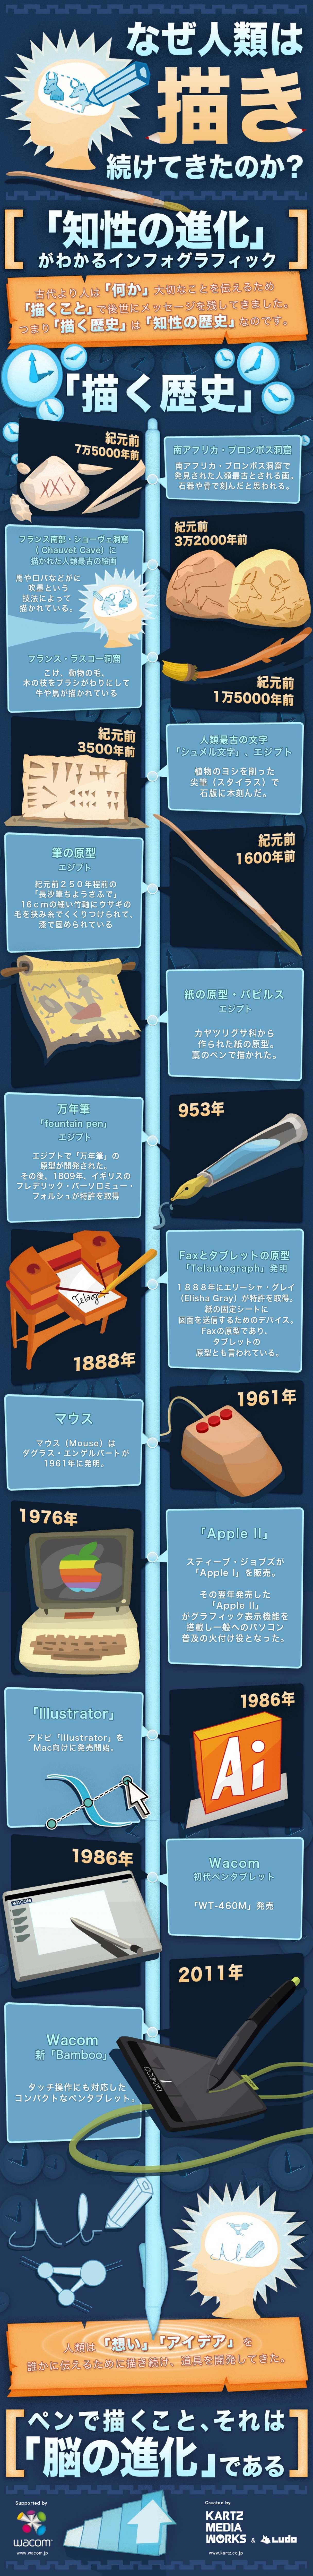 Why do people continue drawing?  Infographic